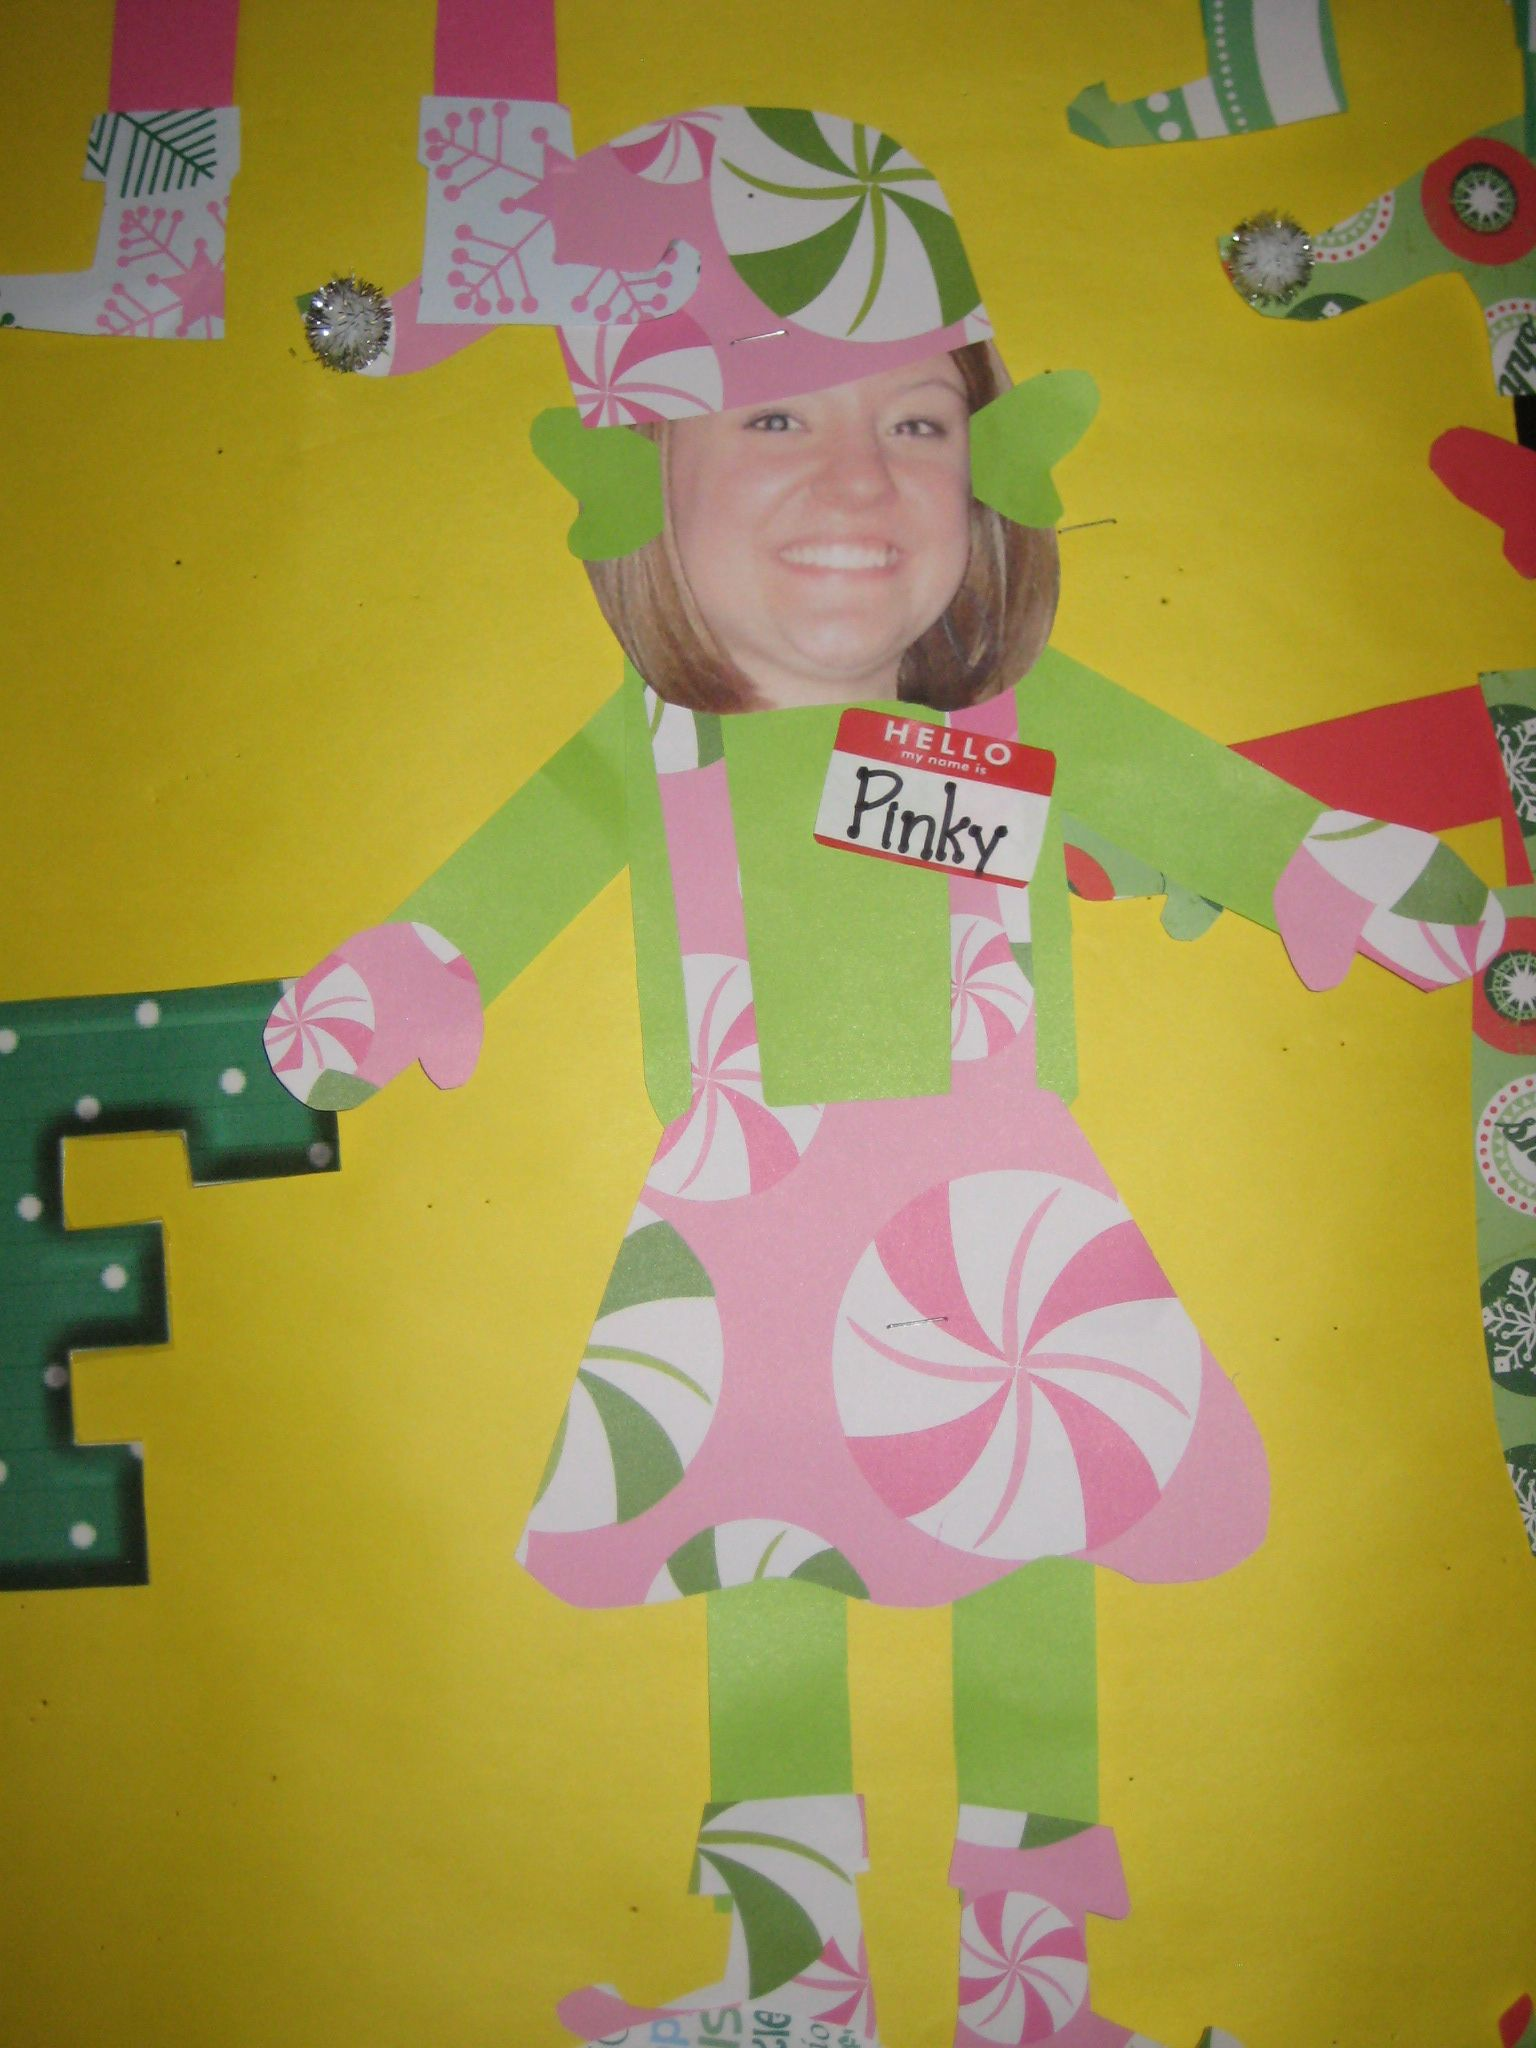 elves... door decorating contest ideas | Door decorating ...